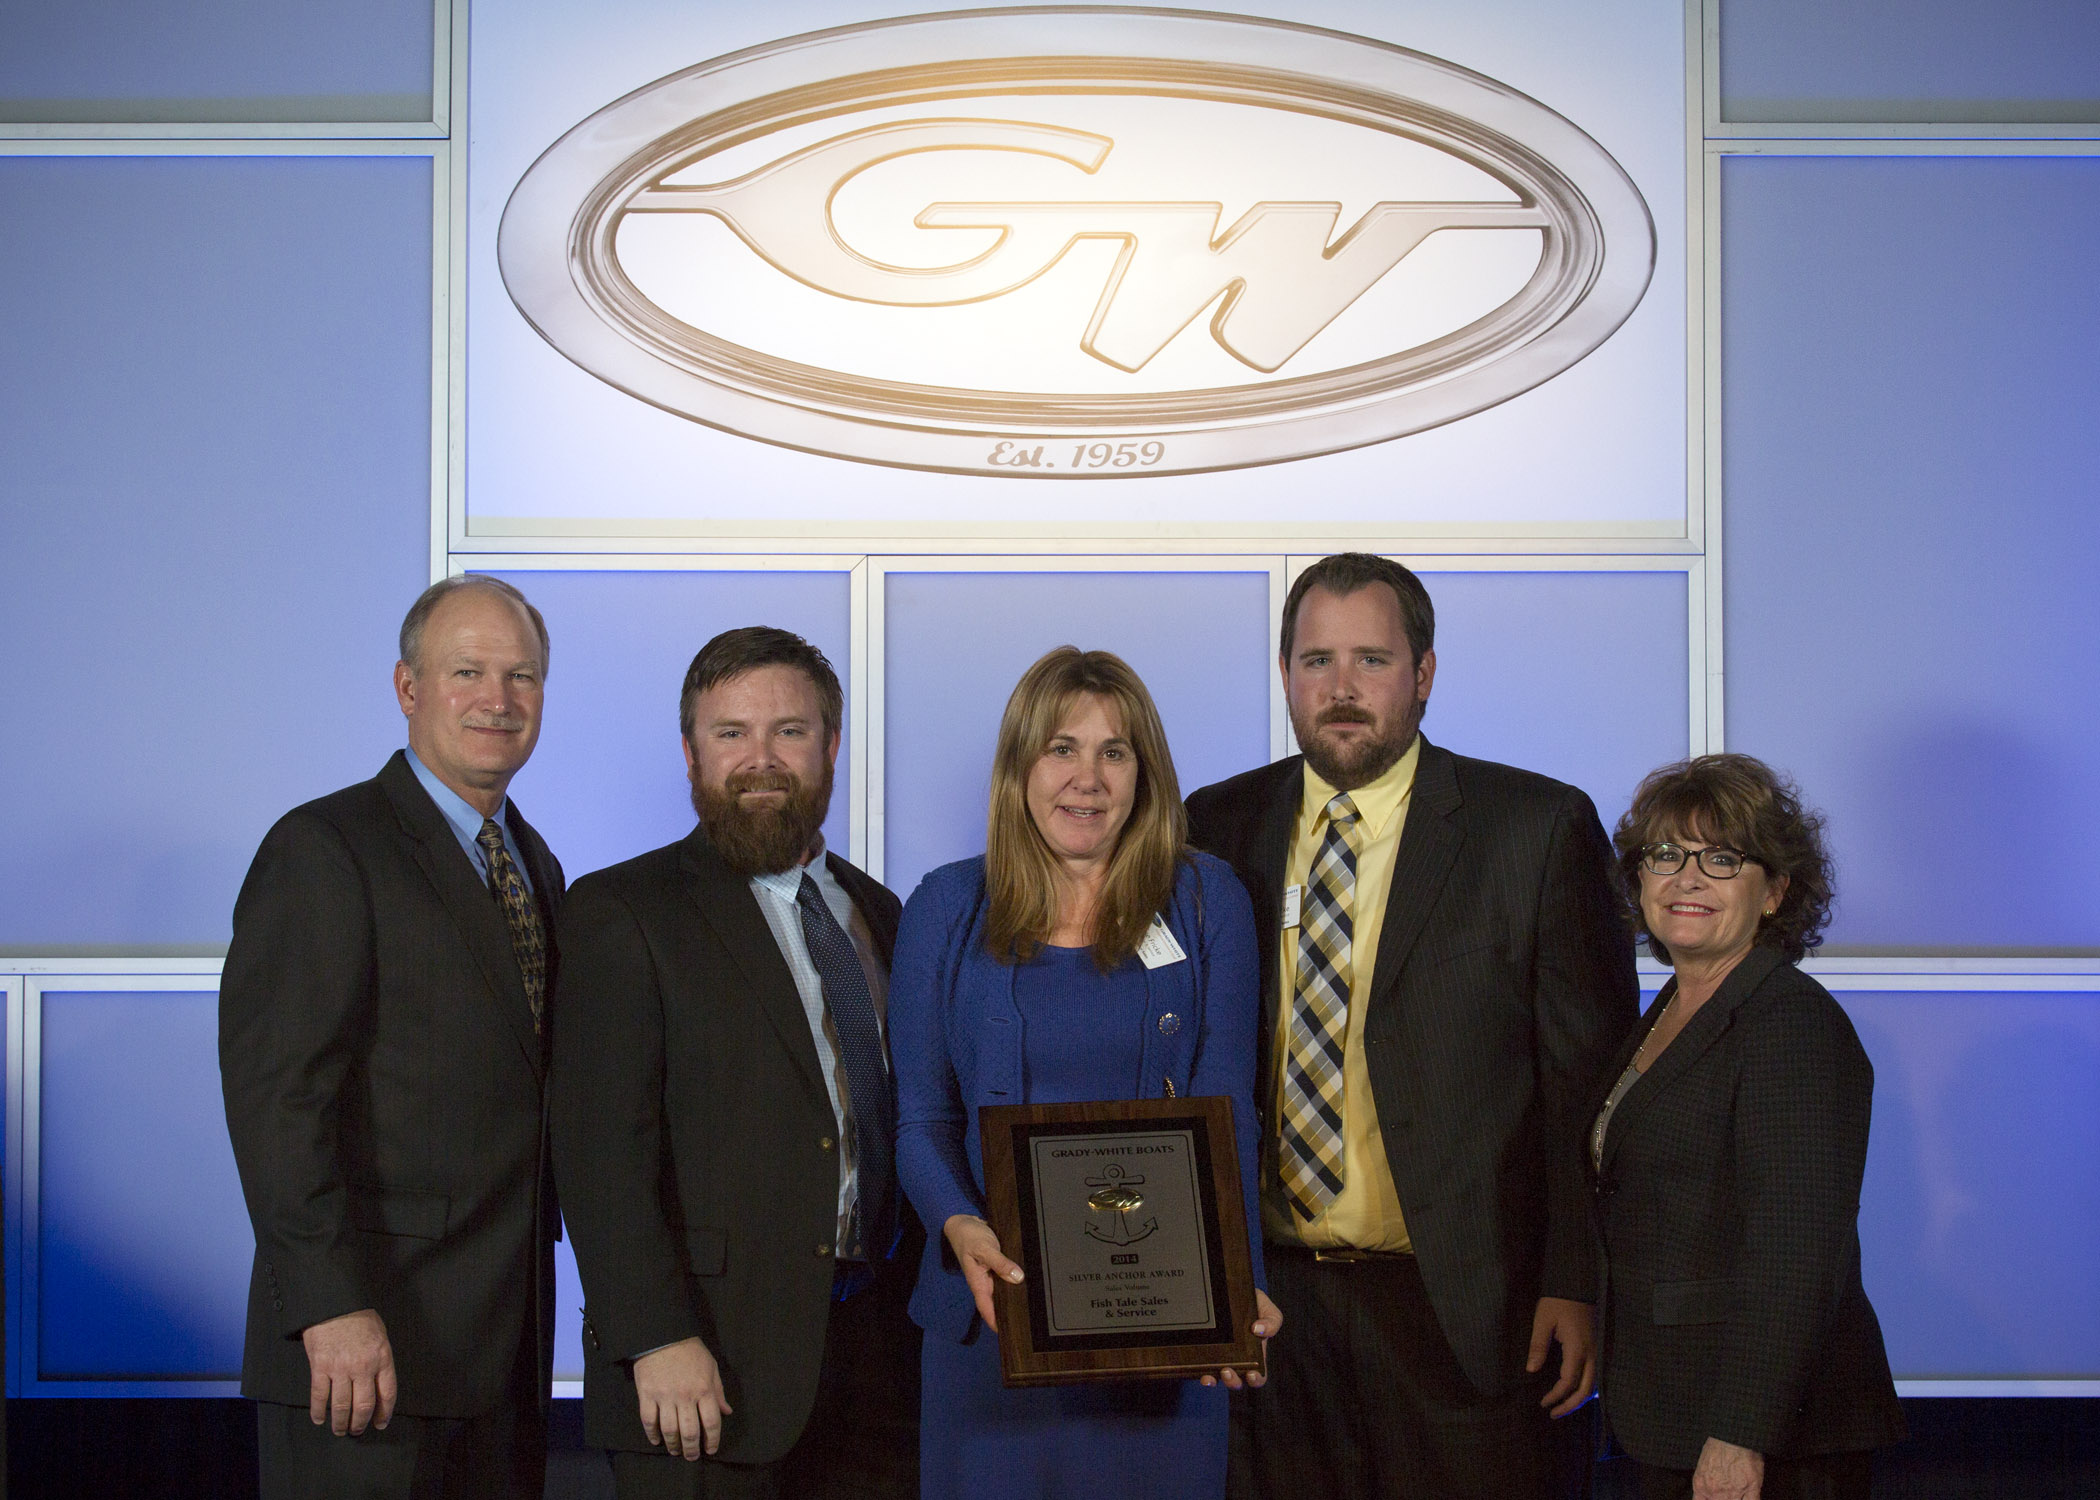 Joey Weller, vice president of sales for Grady-White Boats, left, and Kris Carroll, president of Grady-White Boats, right, present the coveted Gold Anchor Award for Outstanding Customer Satisfaction to Diane Fricke, Travis Fricke and Justin Fricke with Fish Tale Sales & Service of Fort Myers Beach.